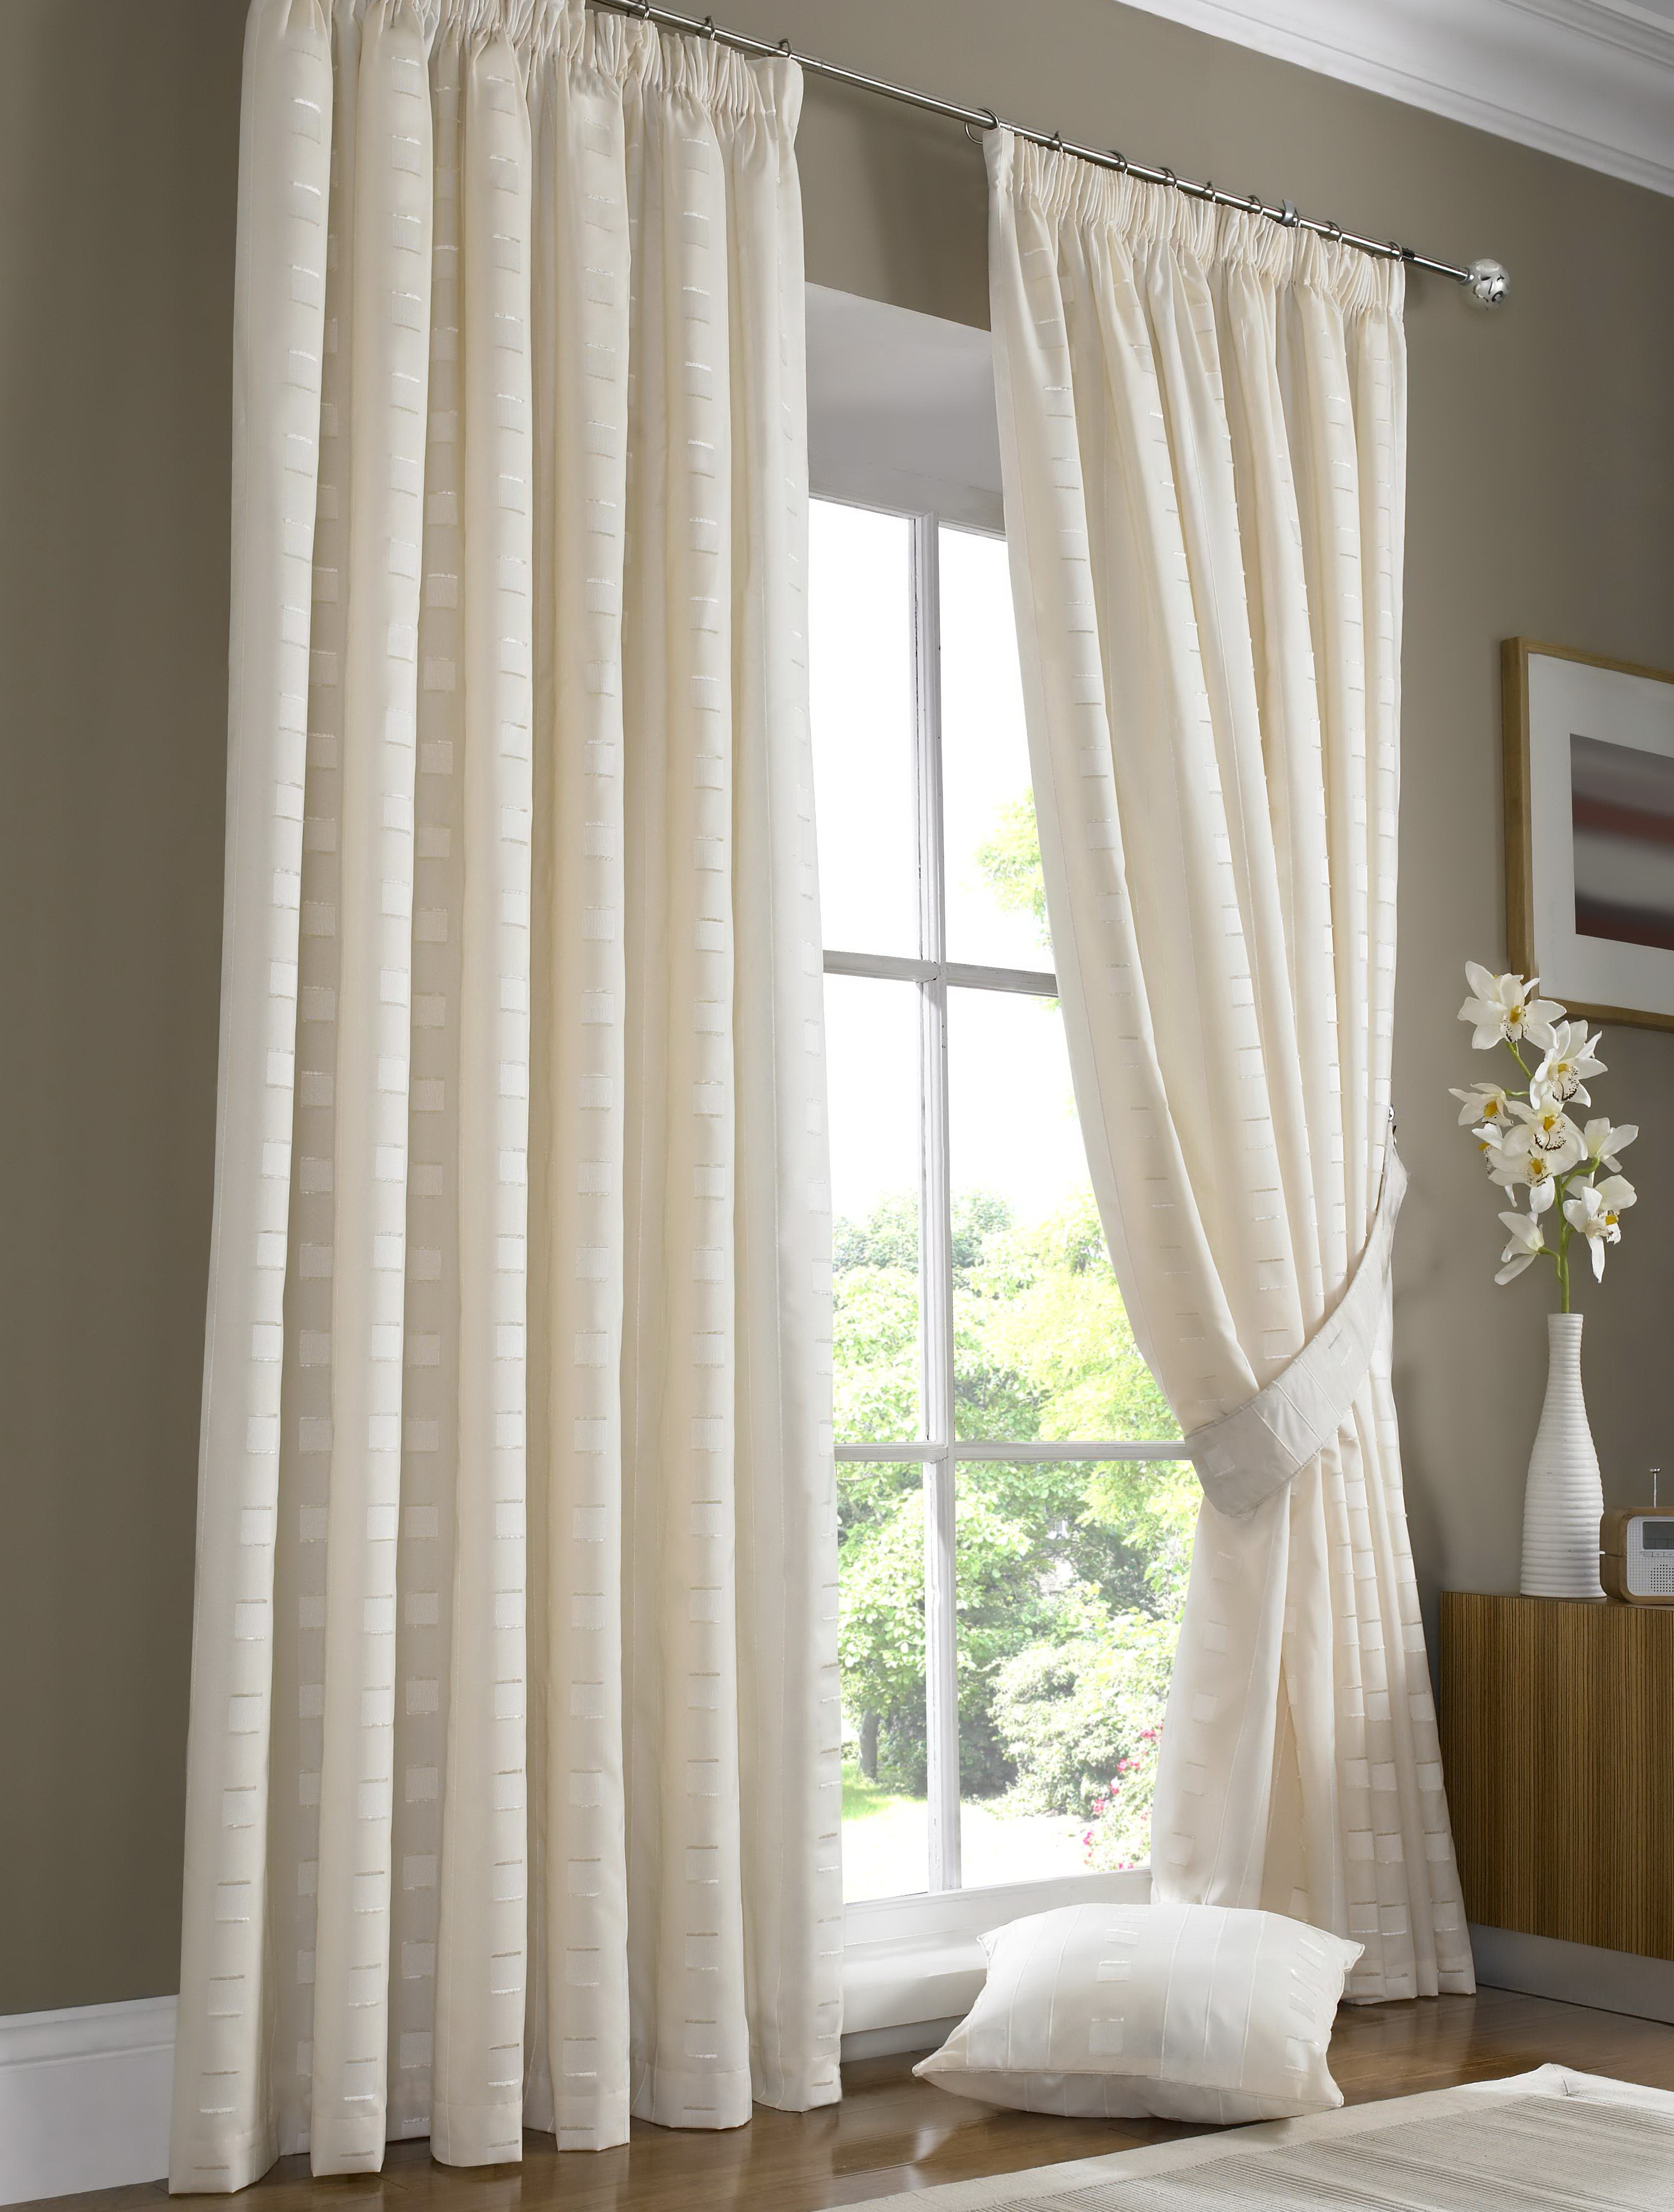 best place to buy curtains london home design ideas. Black Bedroom Furniture Sets. Home Design Ideas